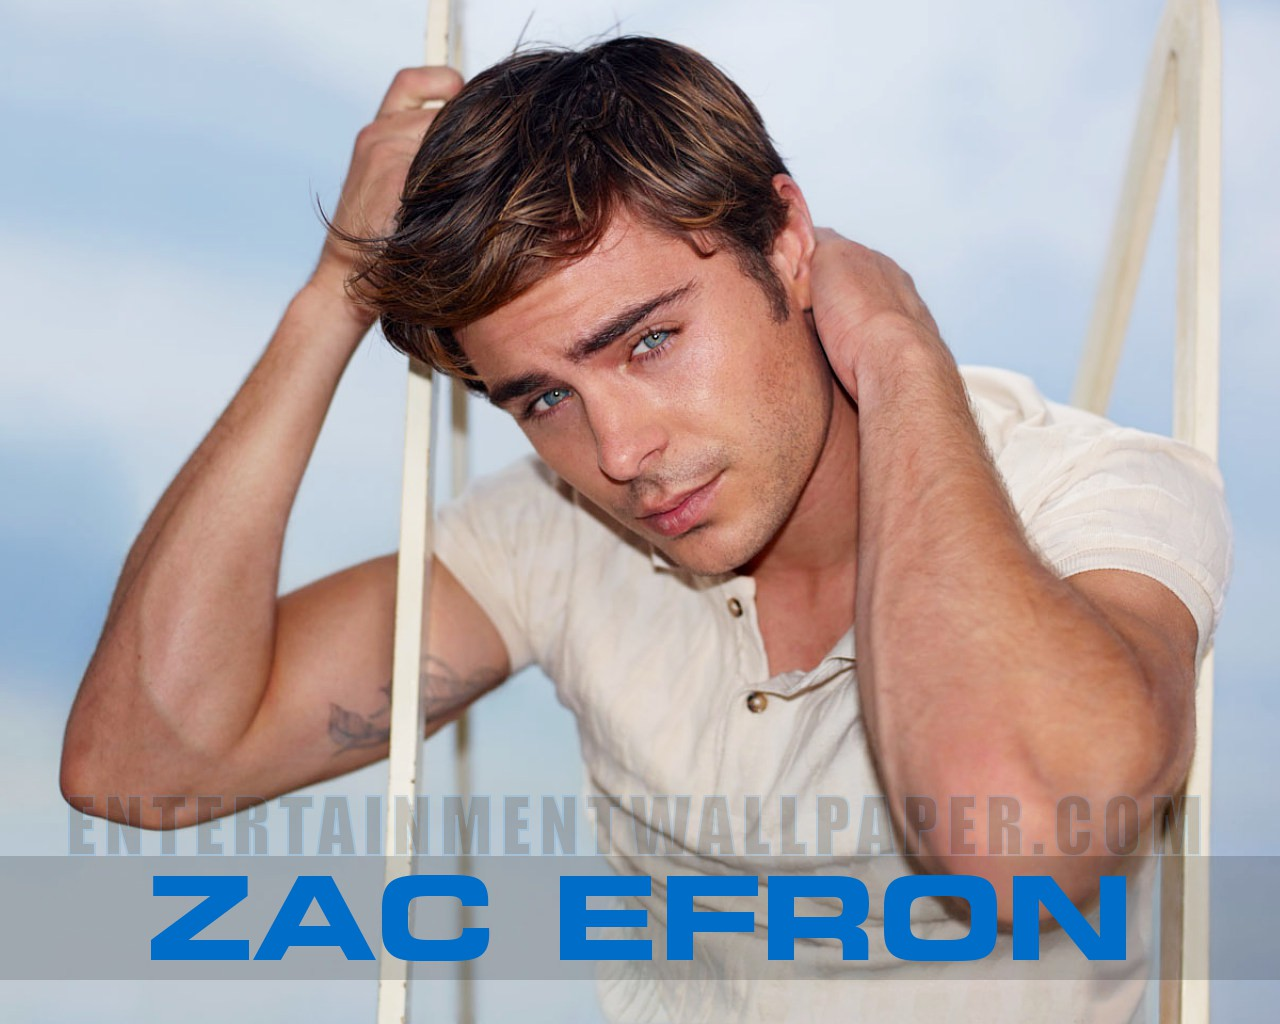 zac efron wallpaper ravishing